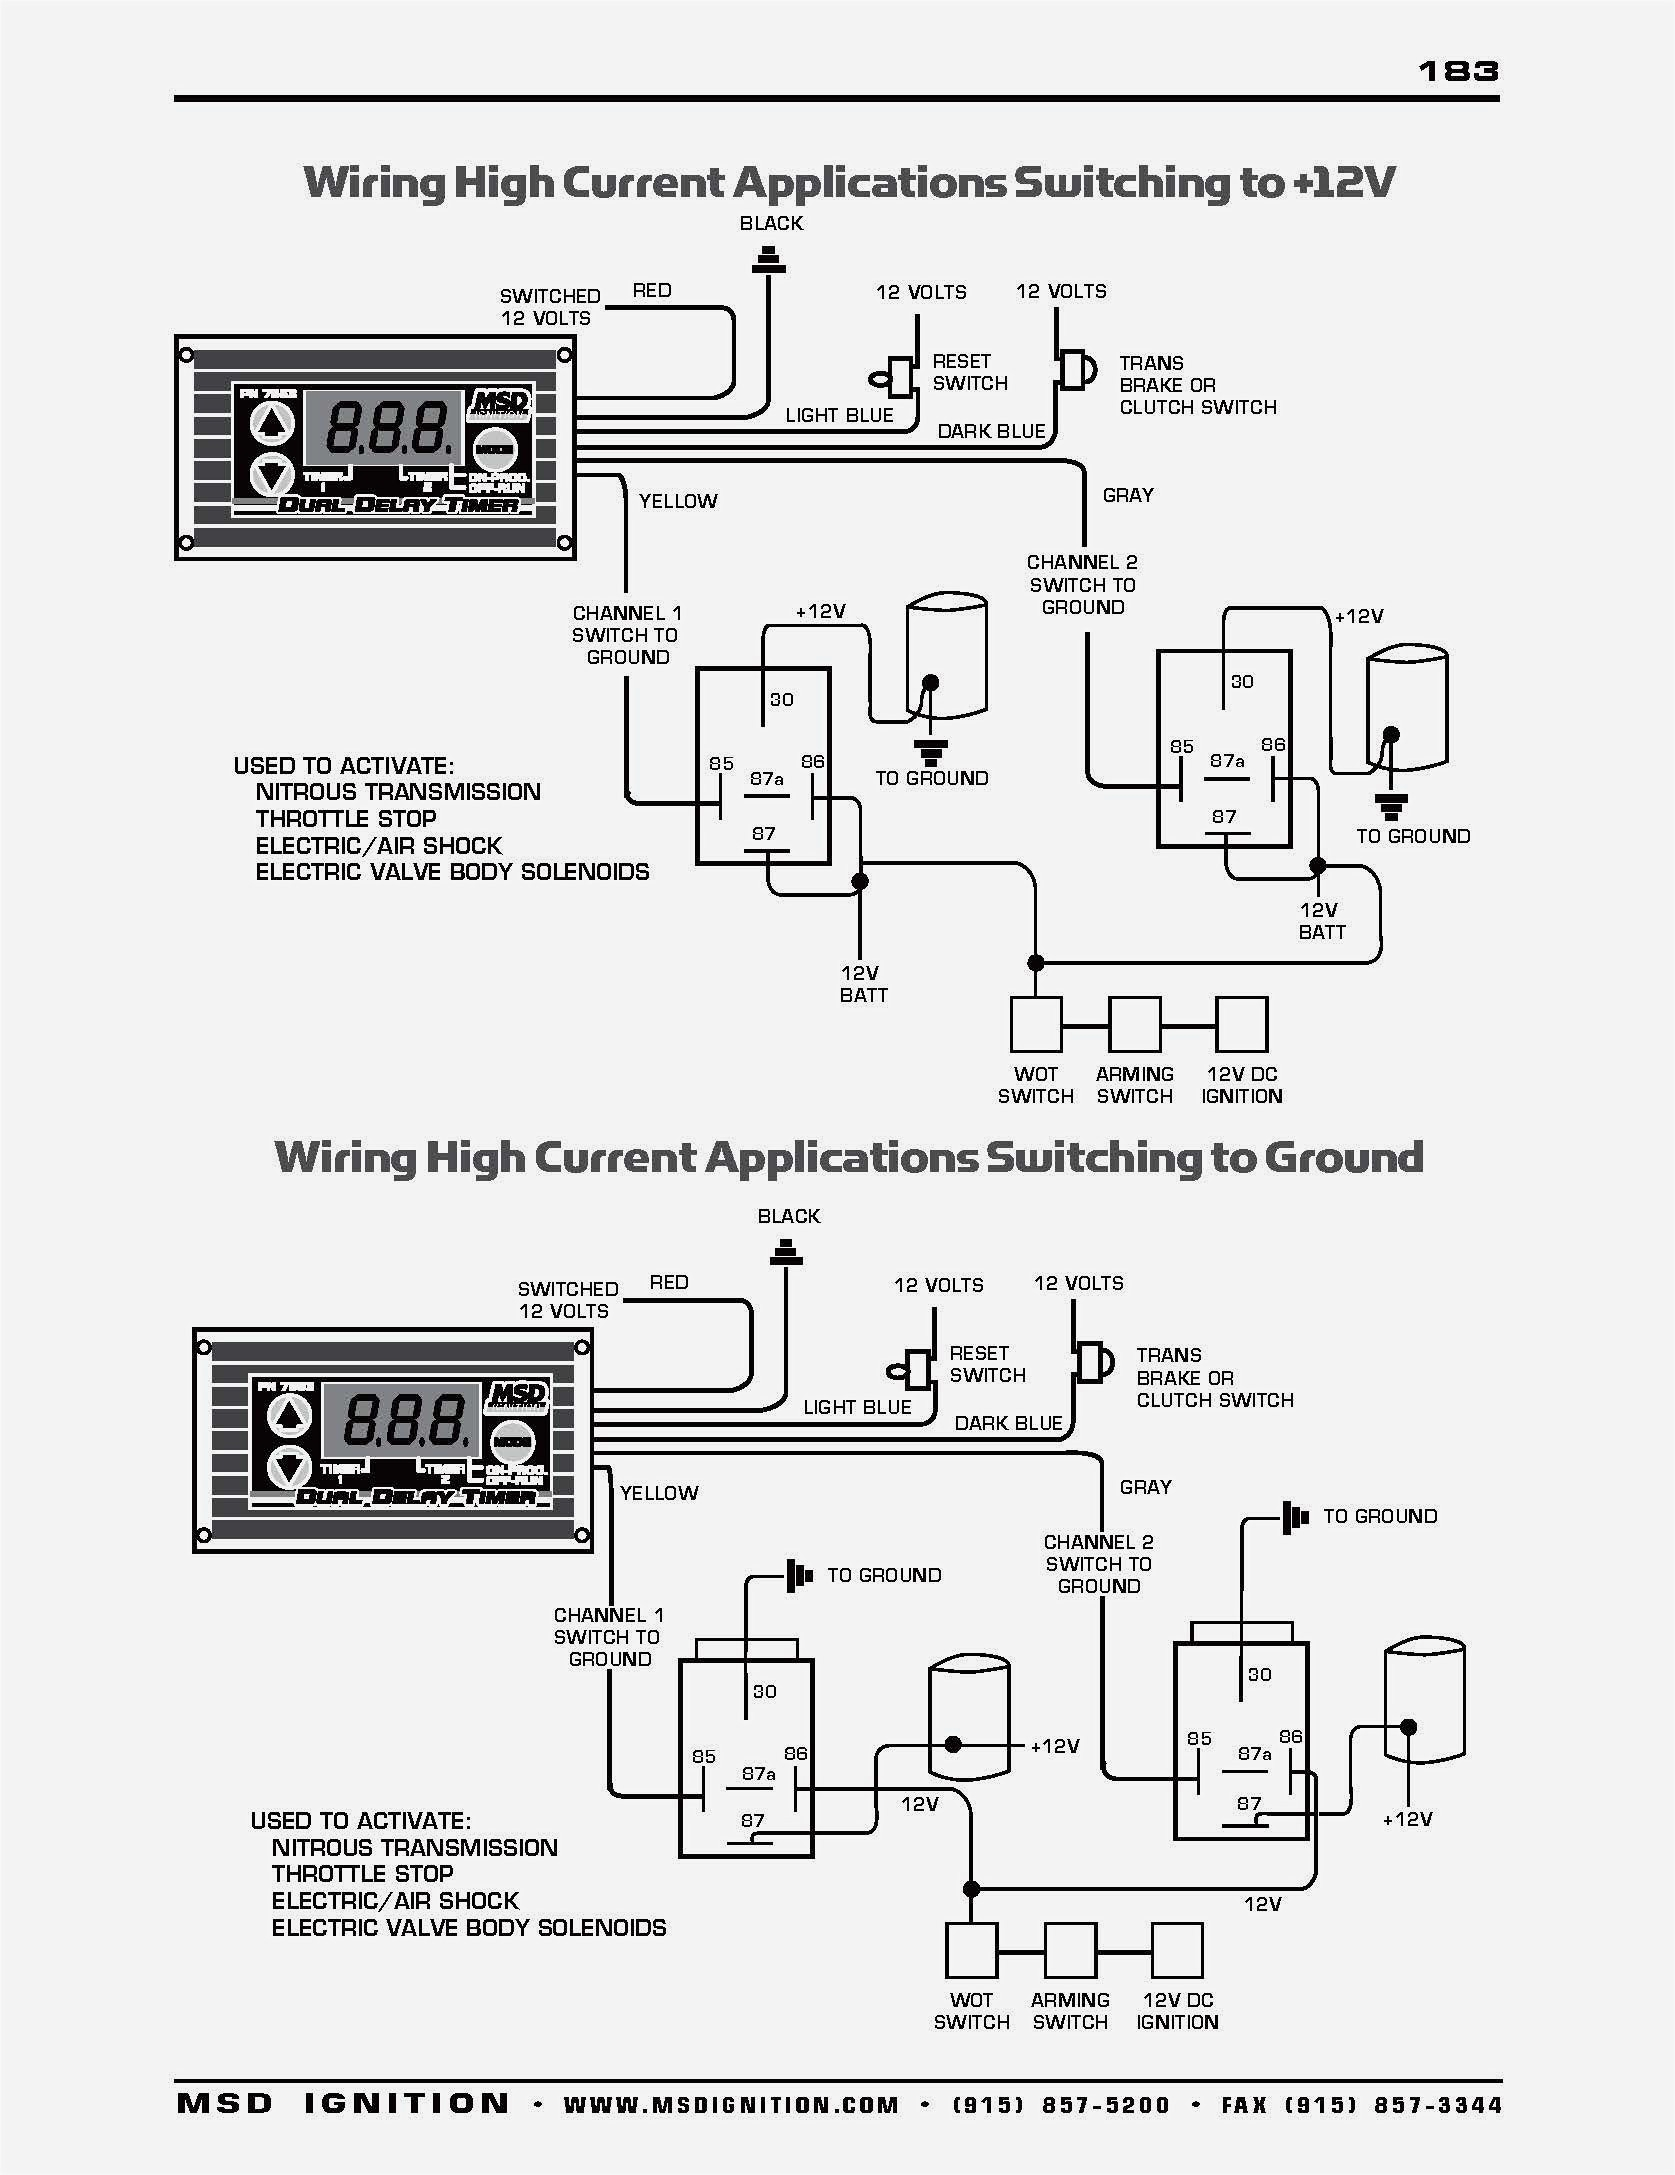 msd box wiring diagram